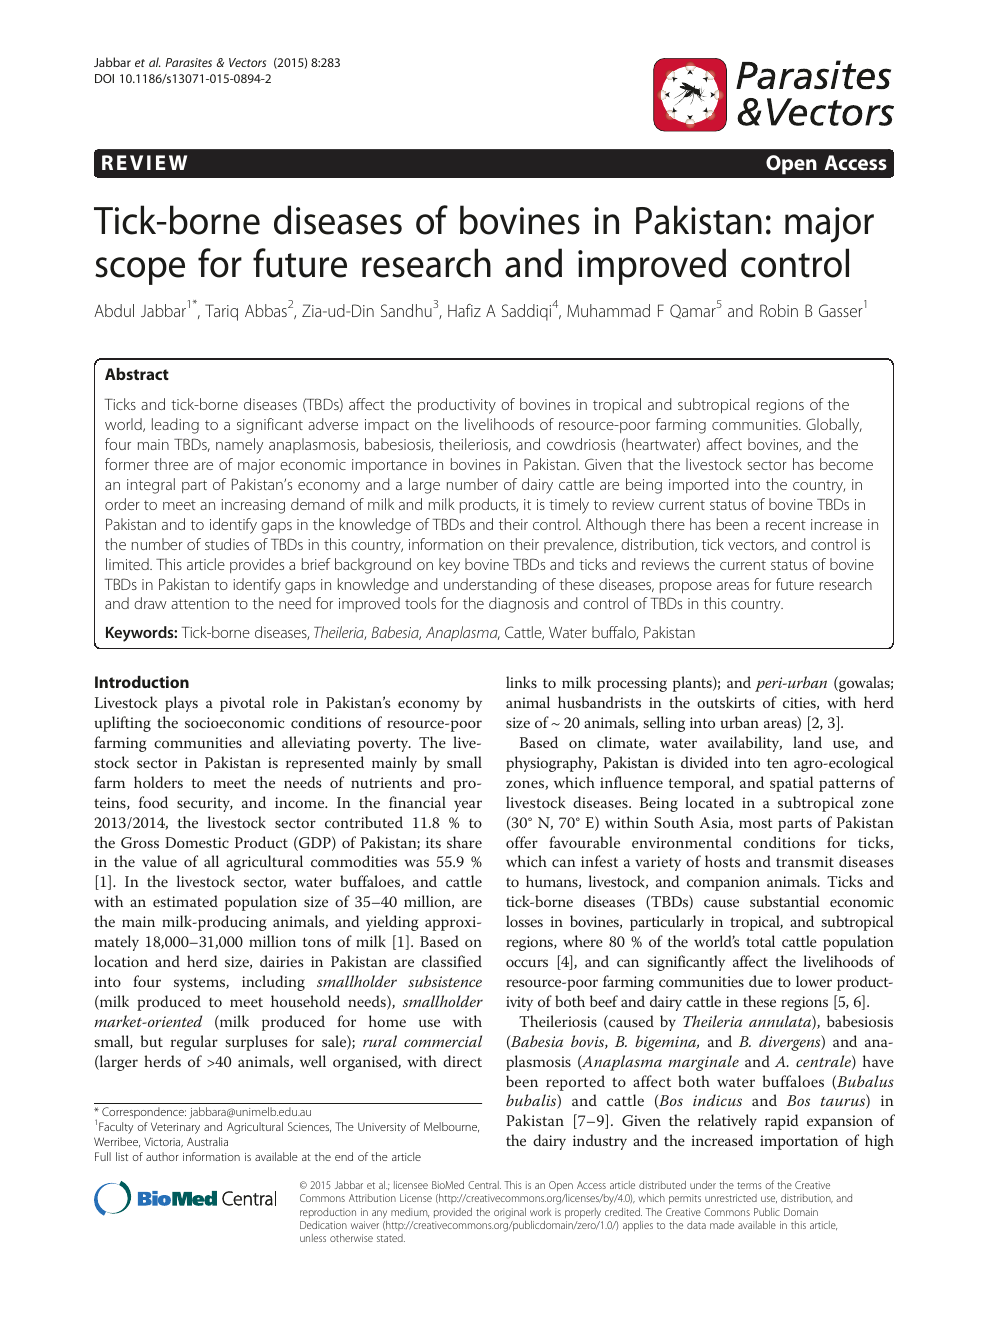 Tick-borne diseases of bovines in Pakistan: major scope for